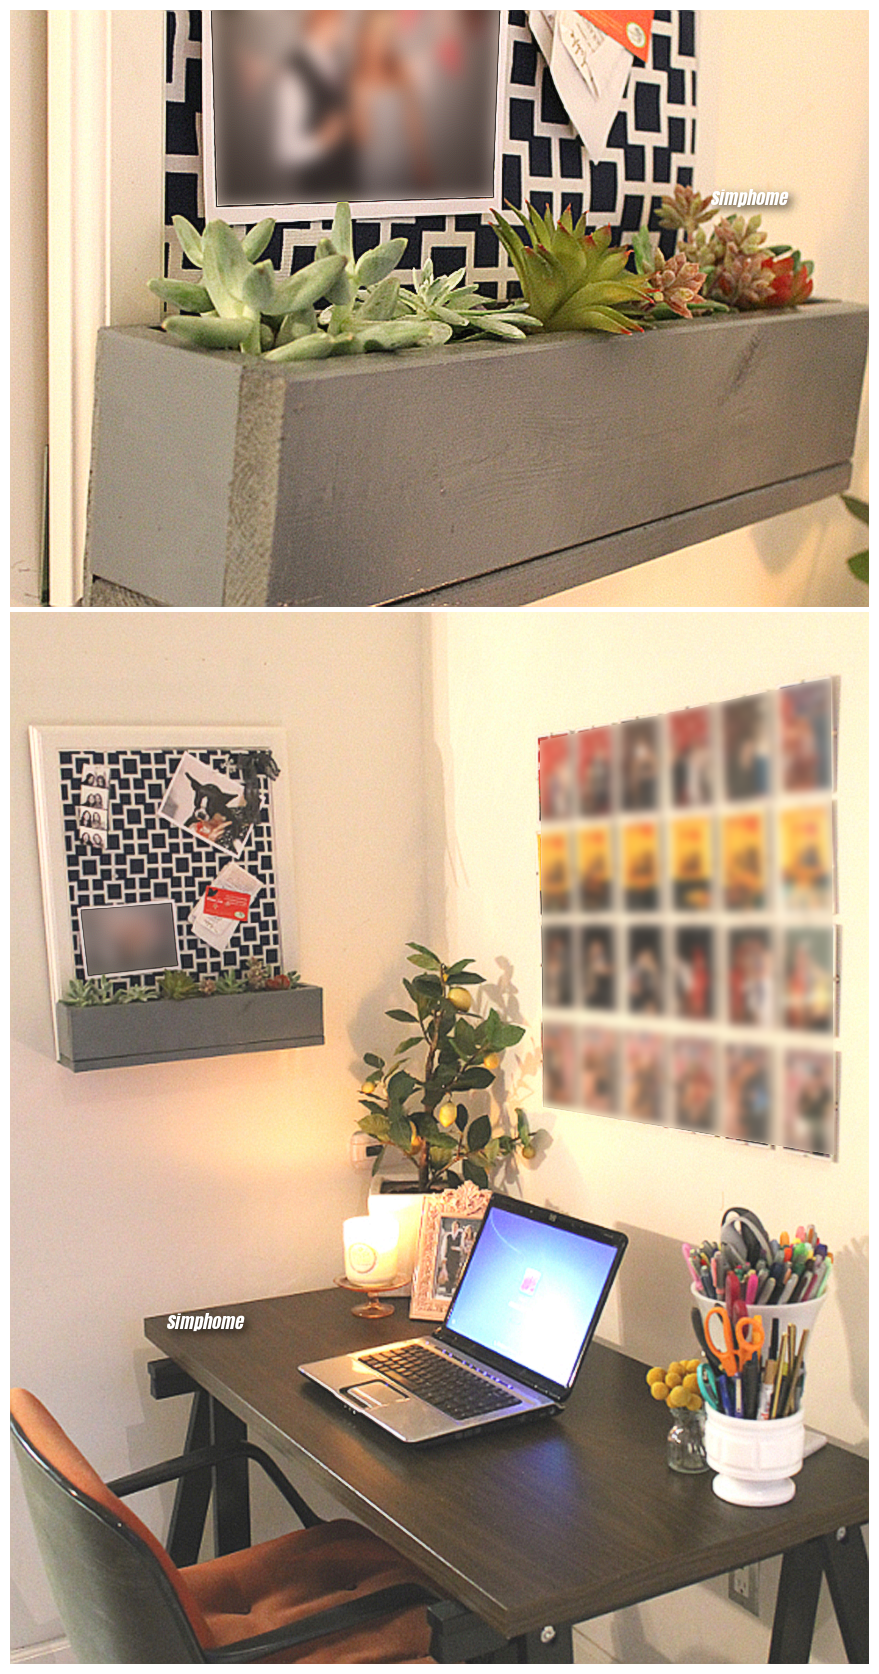 How to Build a DIY corkboard planter via simphome 9